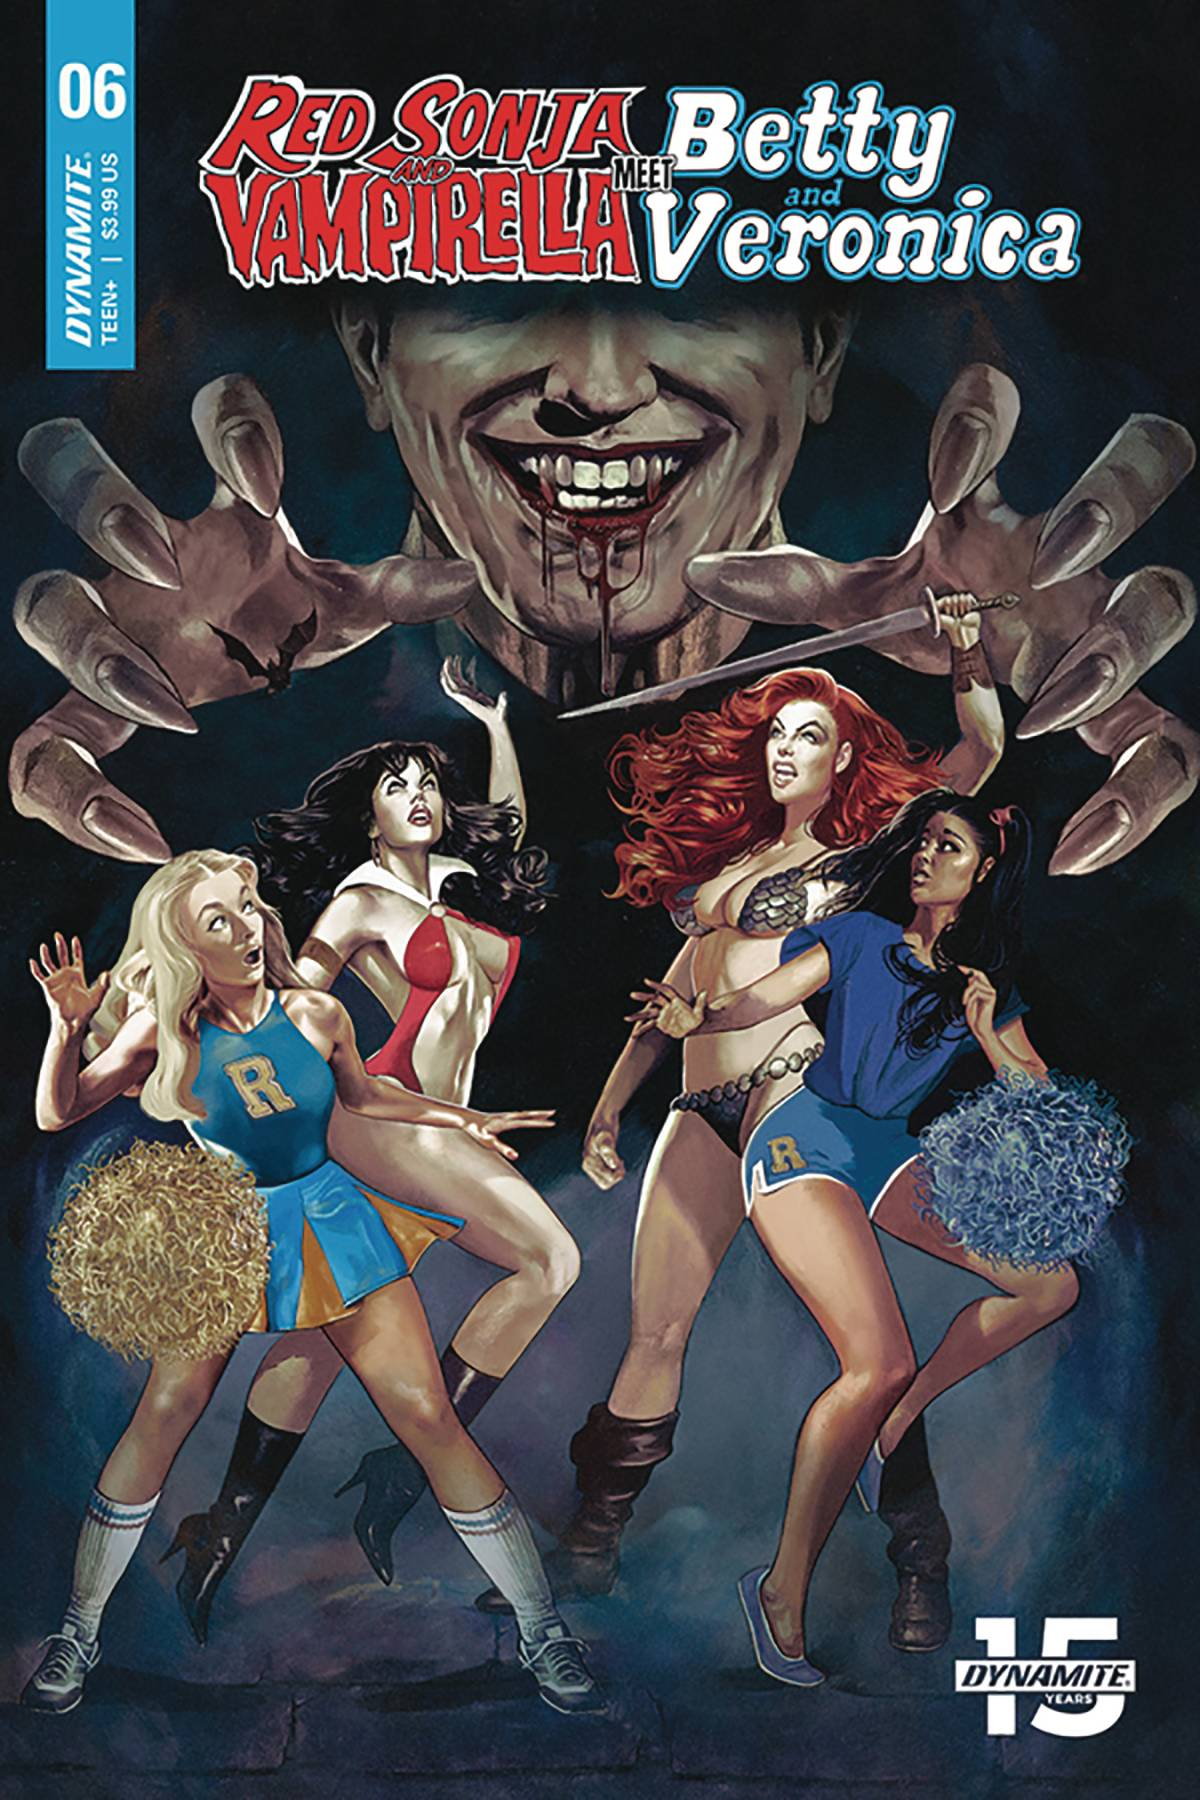 Red Sonja & Vampirella Meet Betty & Veronica #6 (2019)